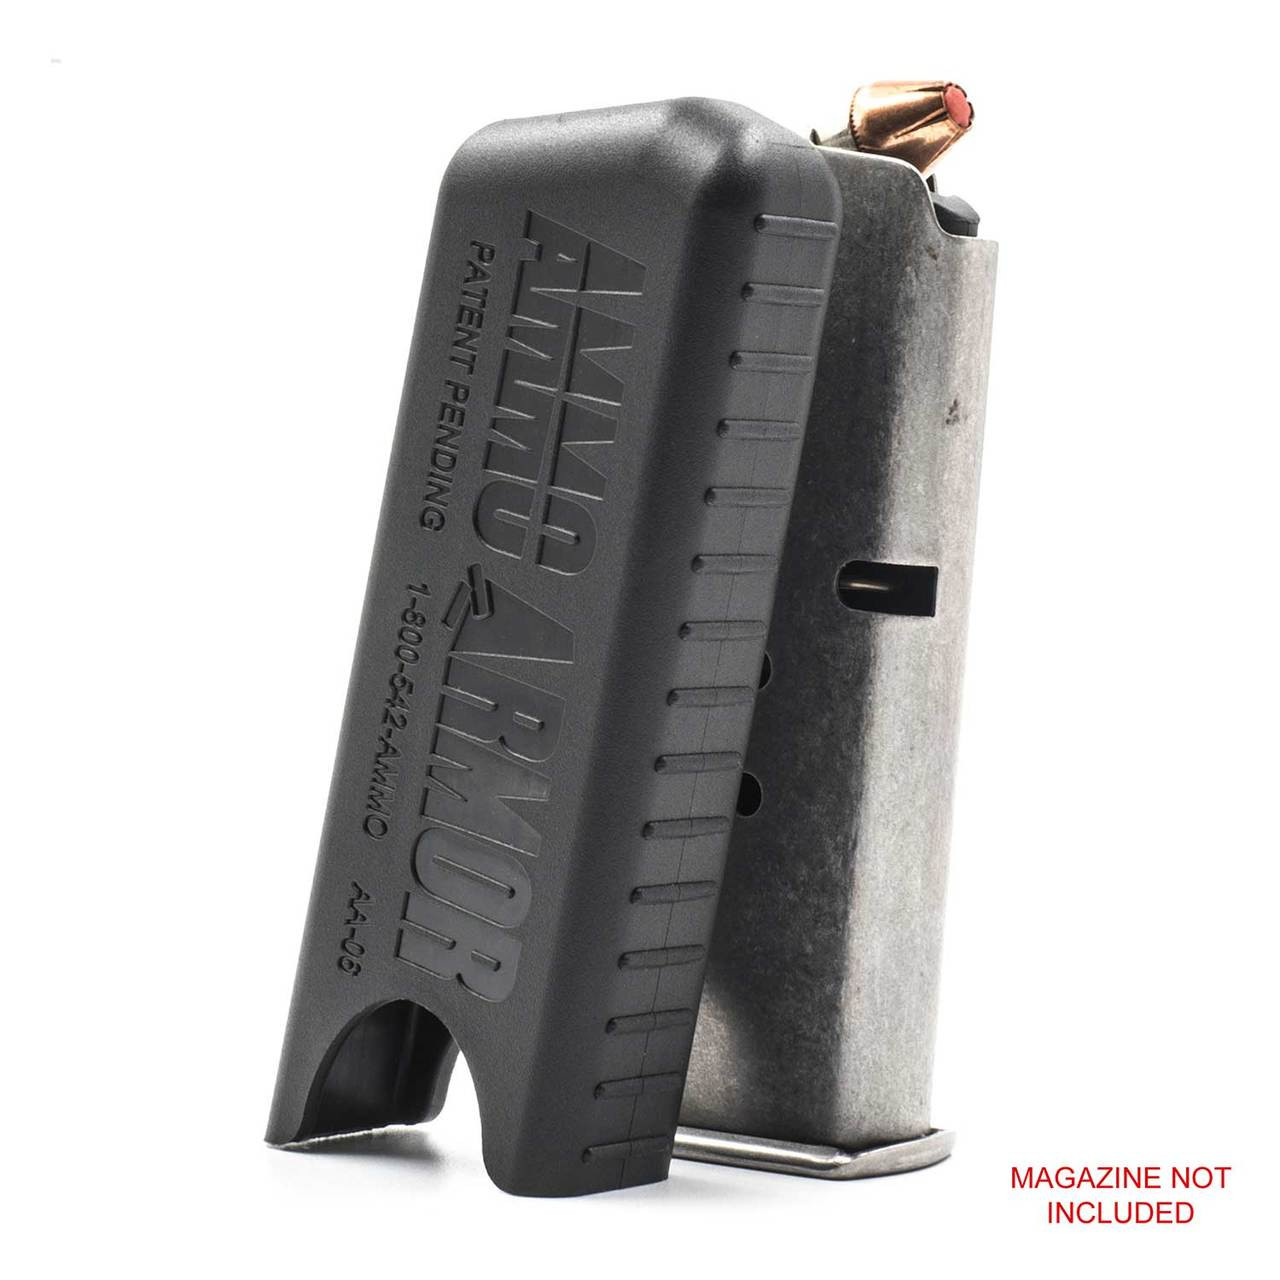 Smith & Wesson Bodyguard 380 Magazine Protector